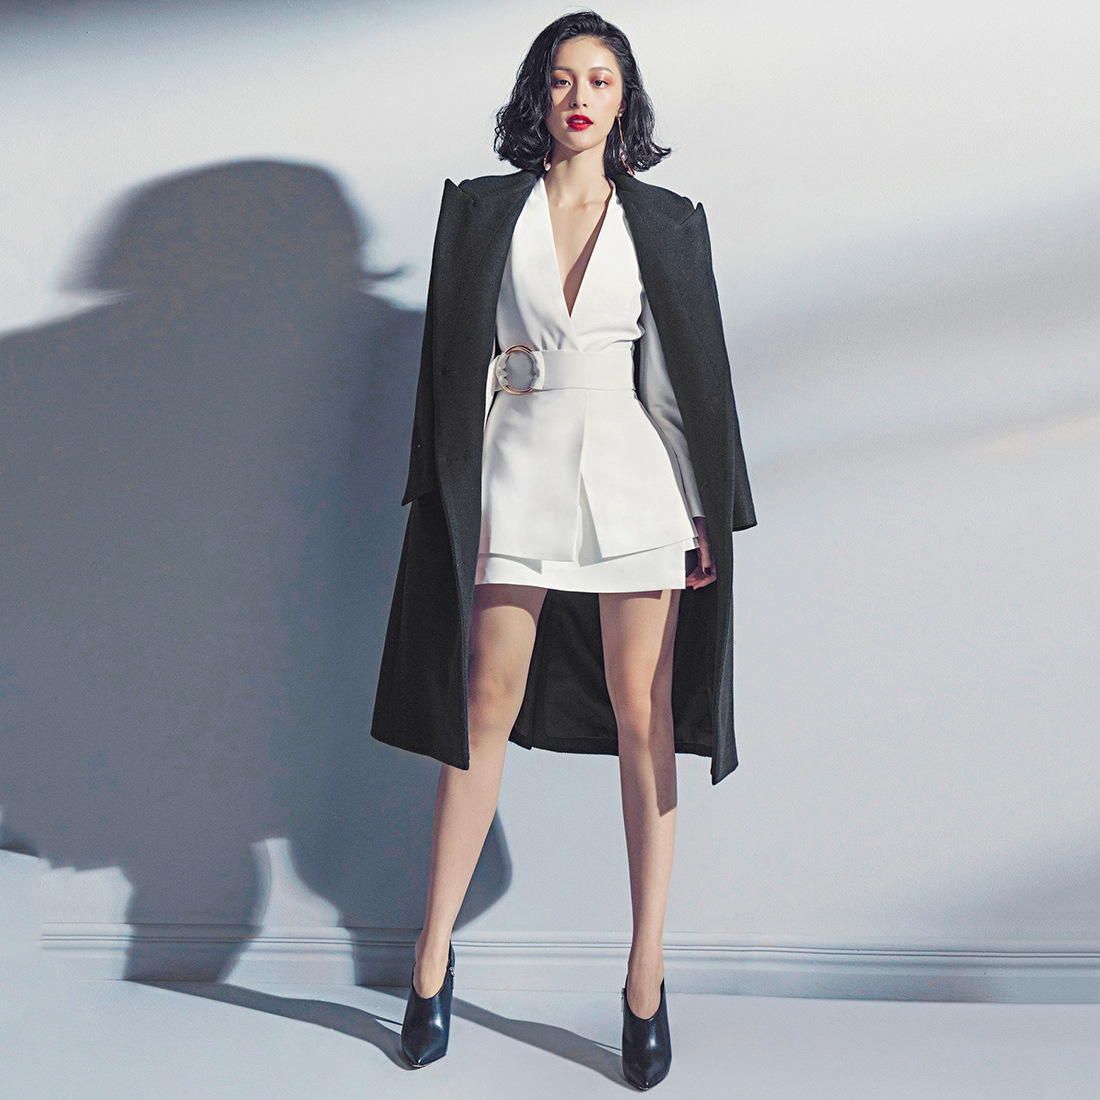 2019 New Fashion Women Dress Irregularity Half Dress Small Suit Two Pieces Of Dress Clothes Black Women Jackets And Coats Suit